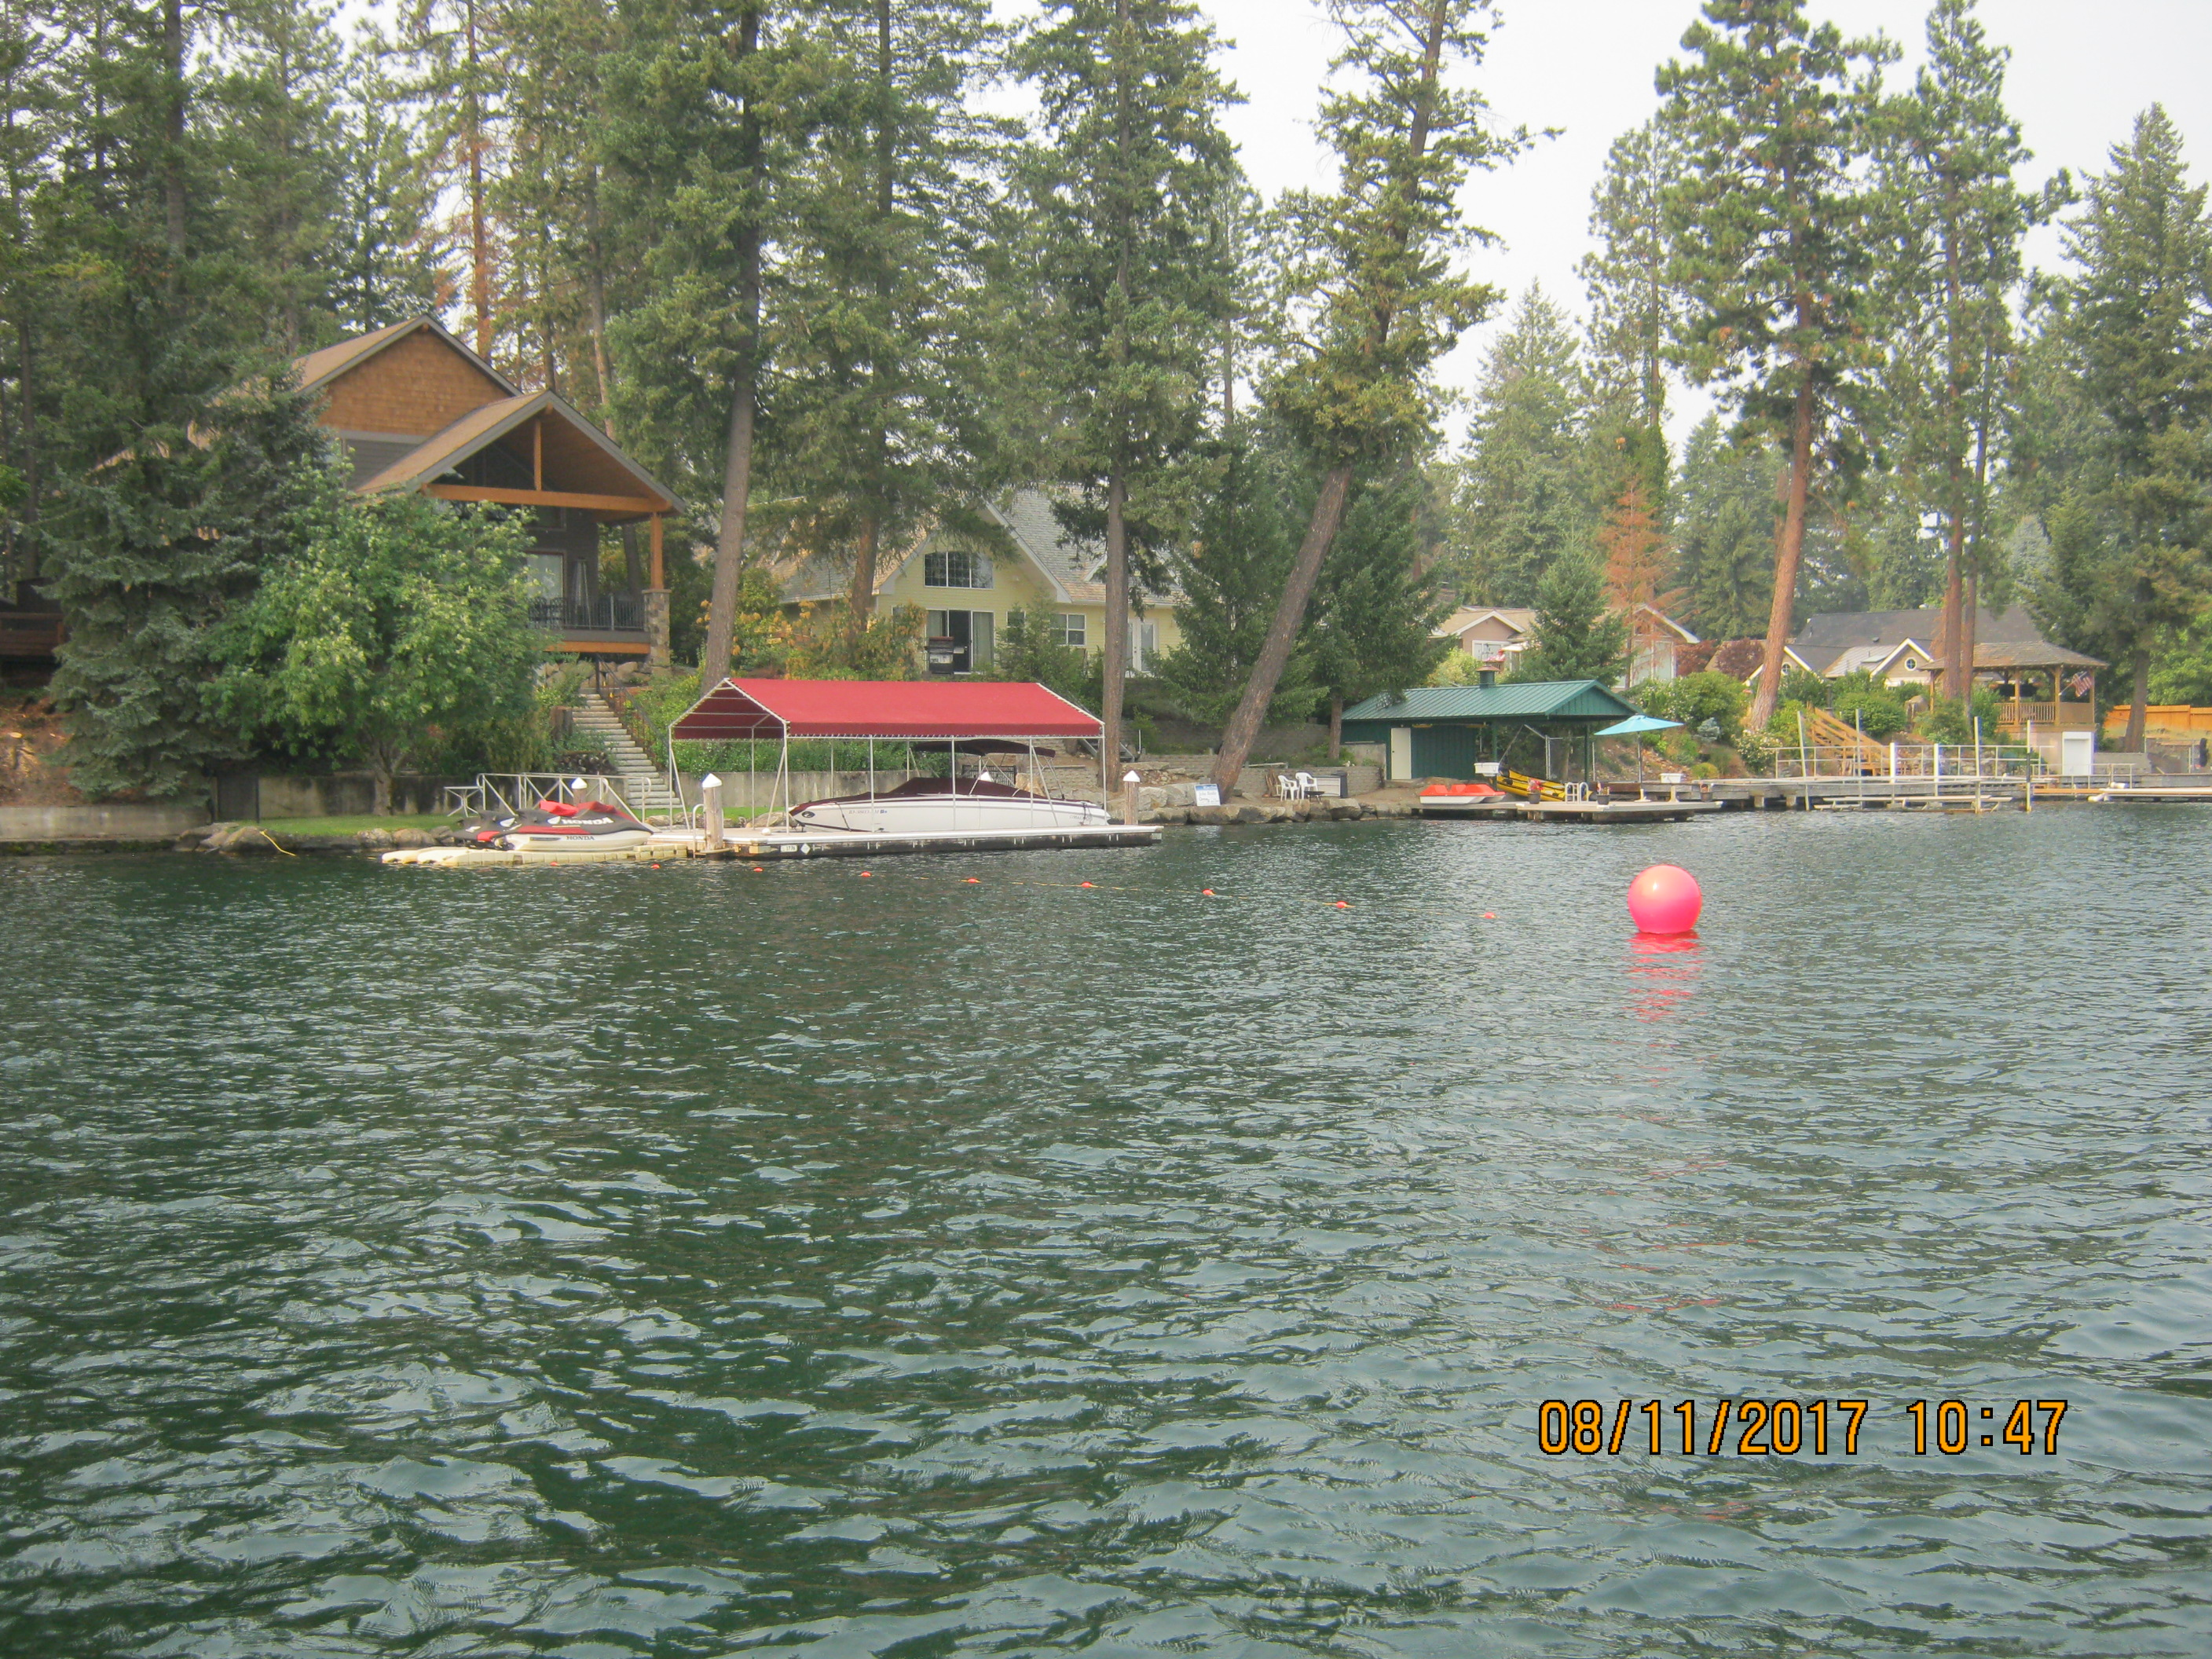 Boat wakes, illegal buoys on the Spokane River cause a splash that ripples all the way to Boise...